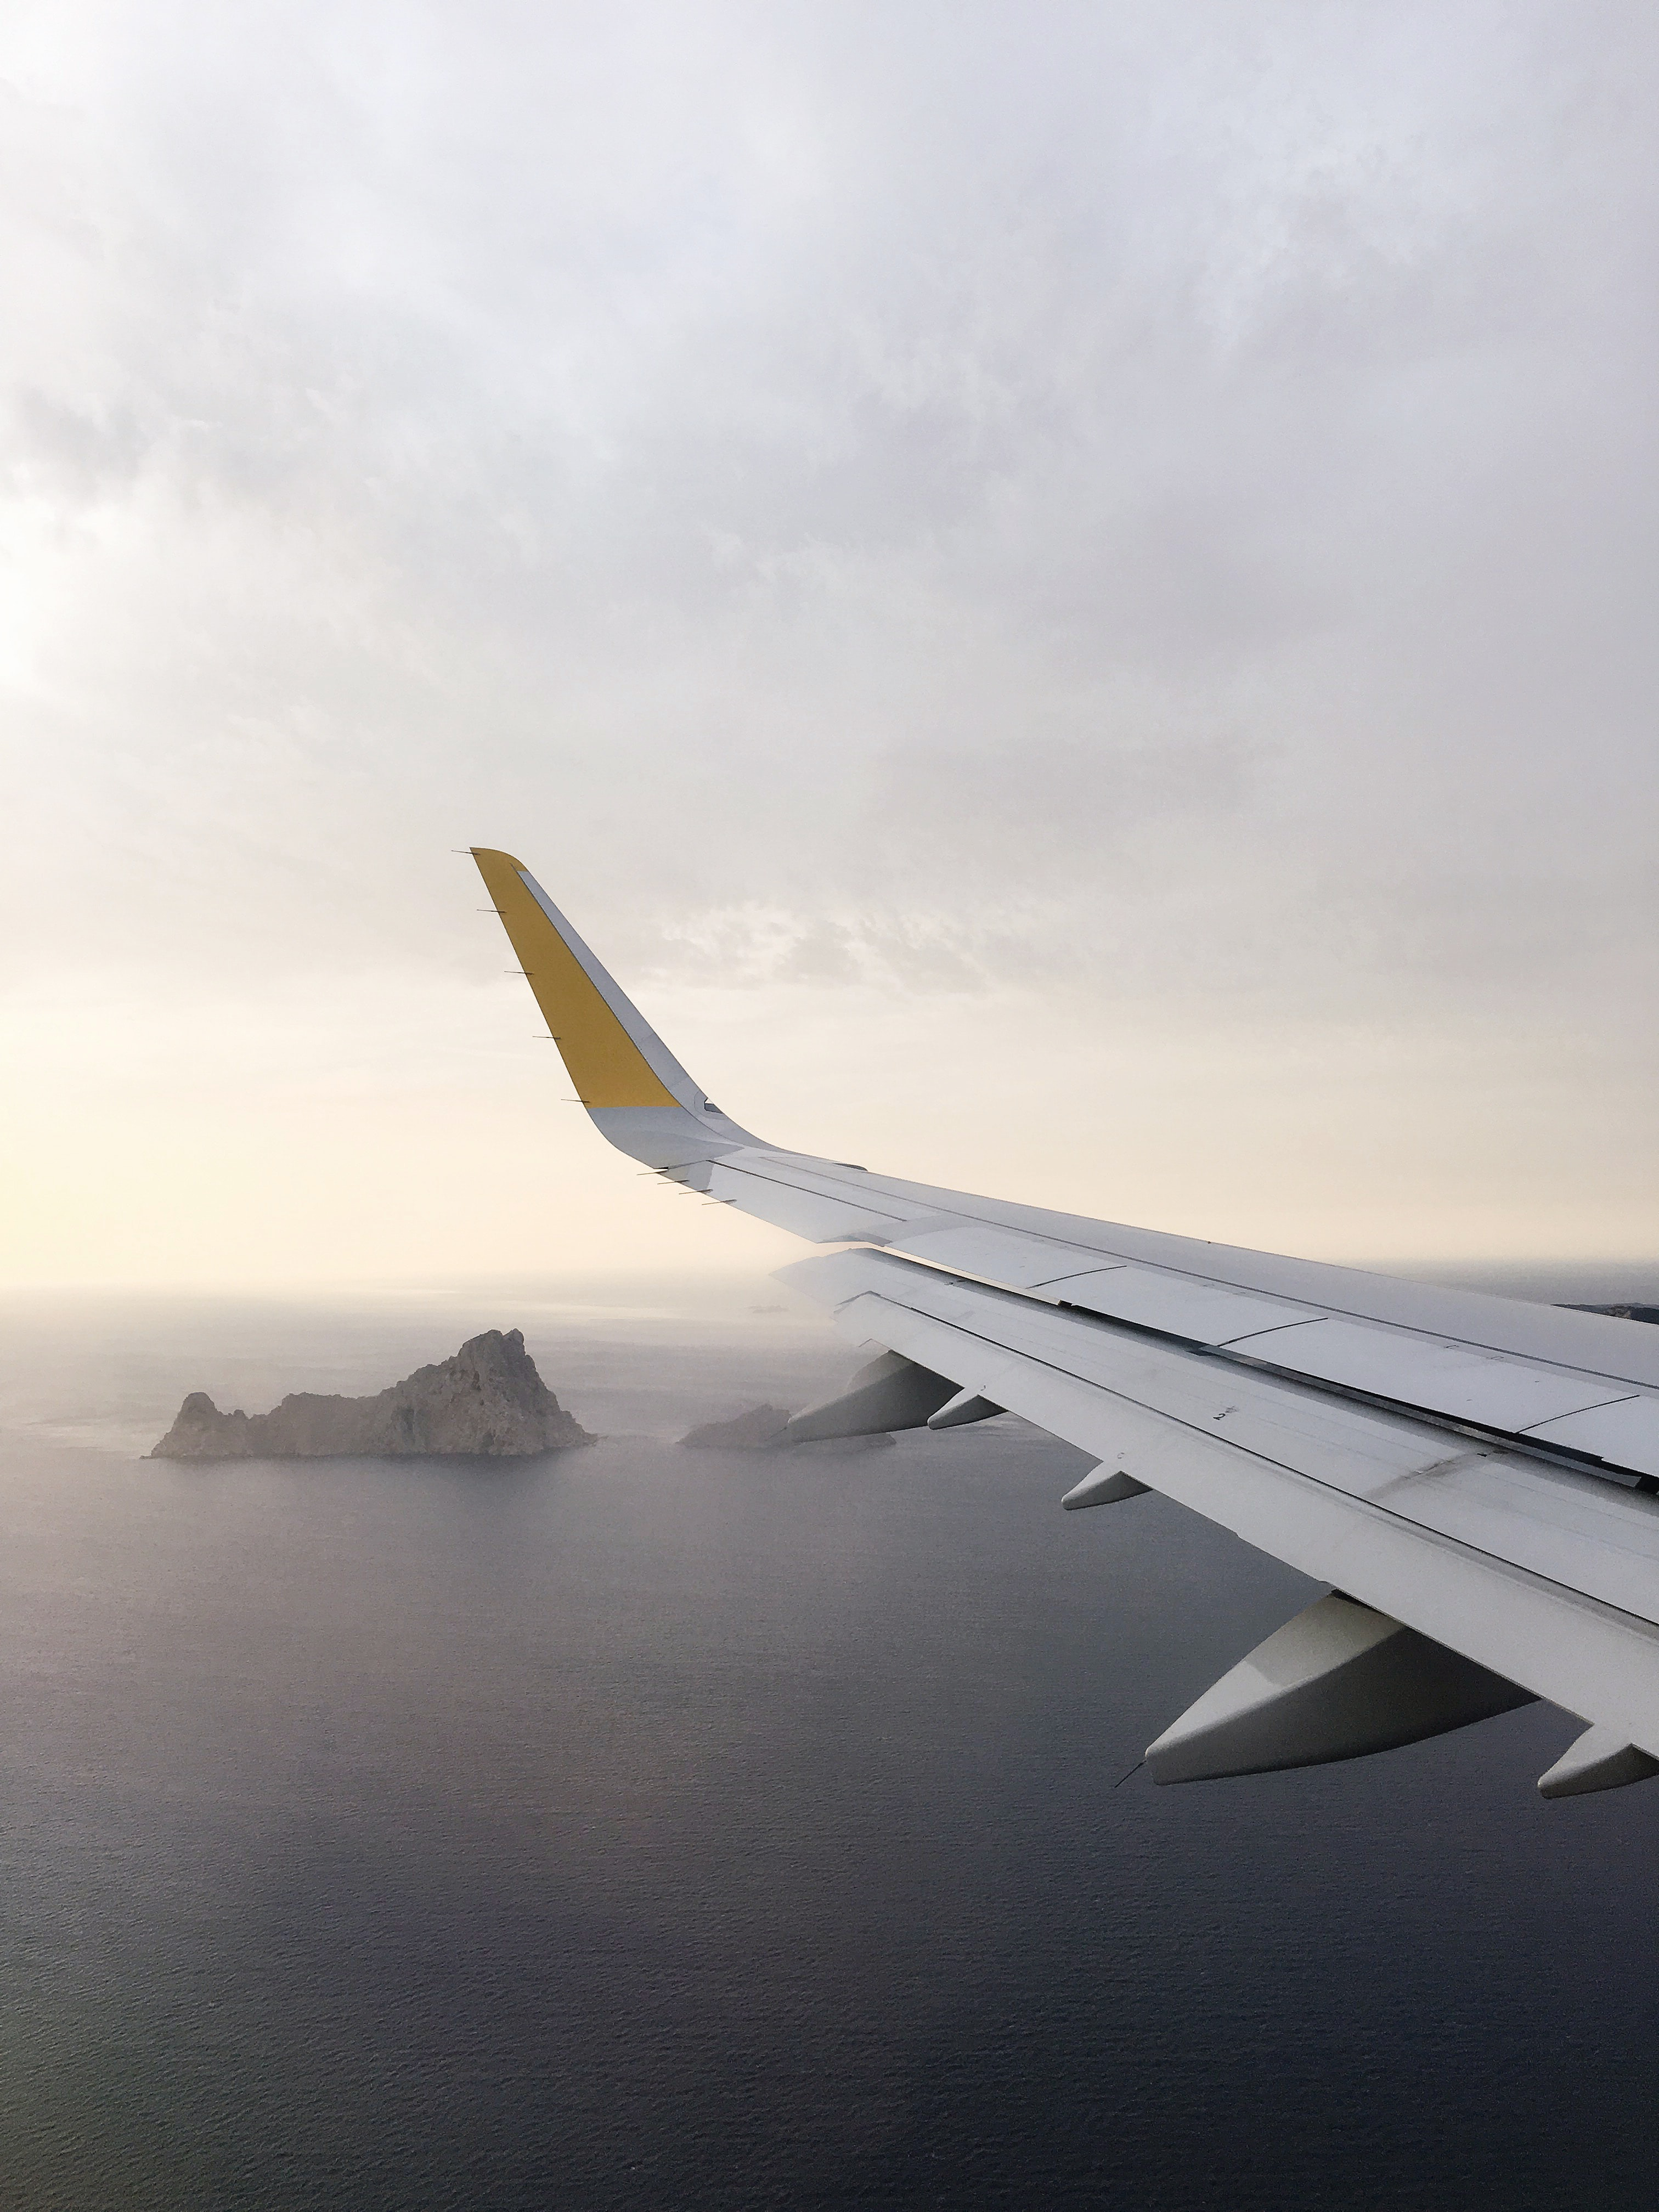 A view from an airplane window on the surface of the ocean with rocky islands jutting out of the water